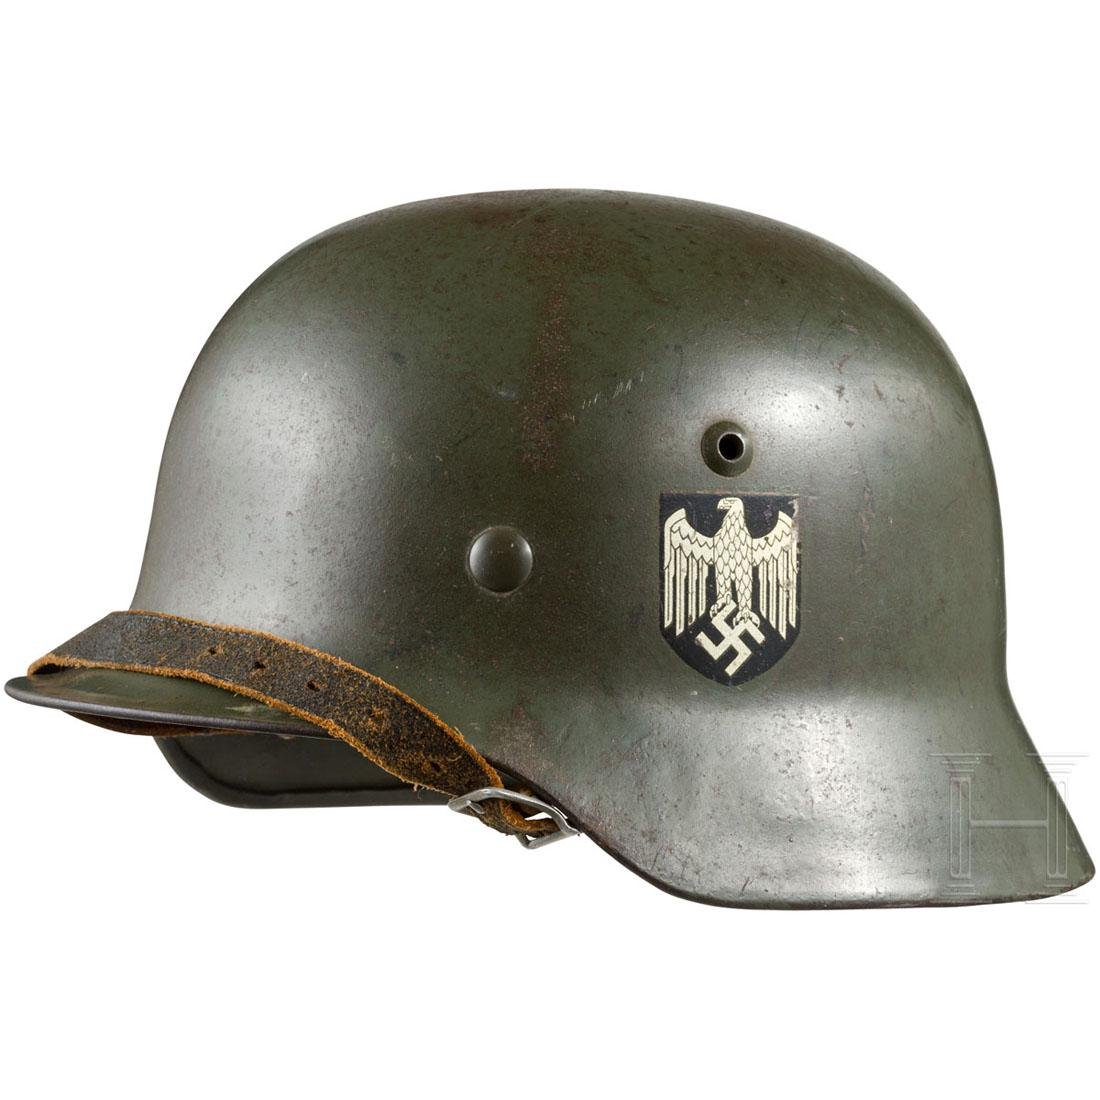 An M 35 steel helmet for the Army with both badges